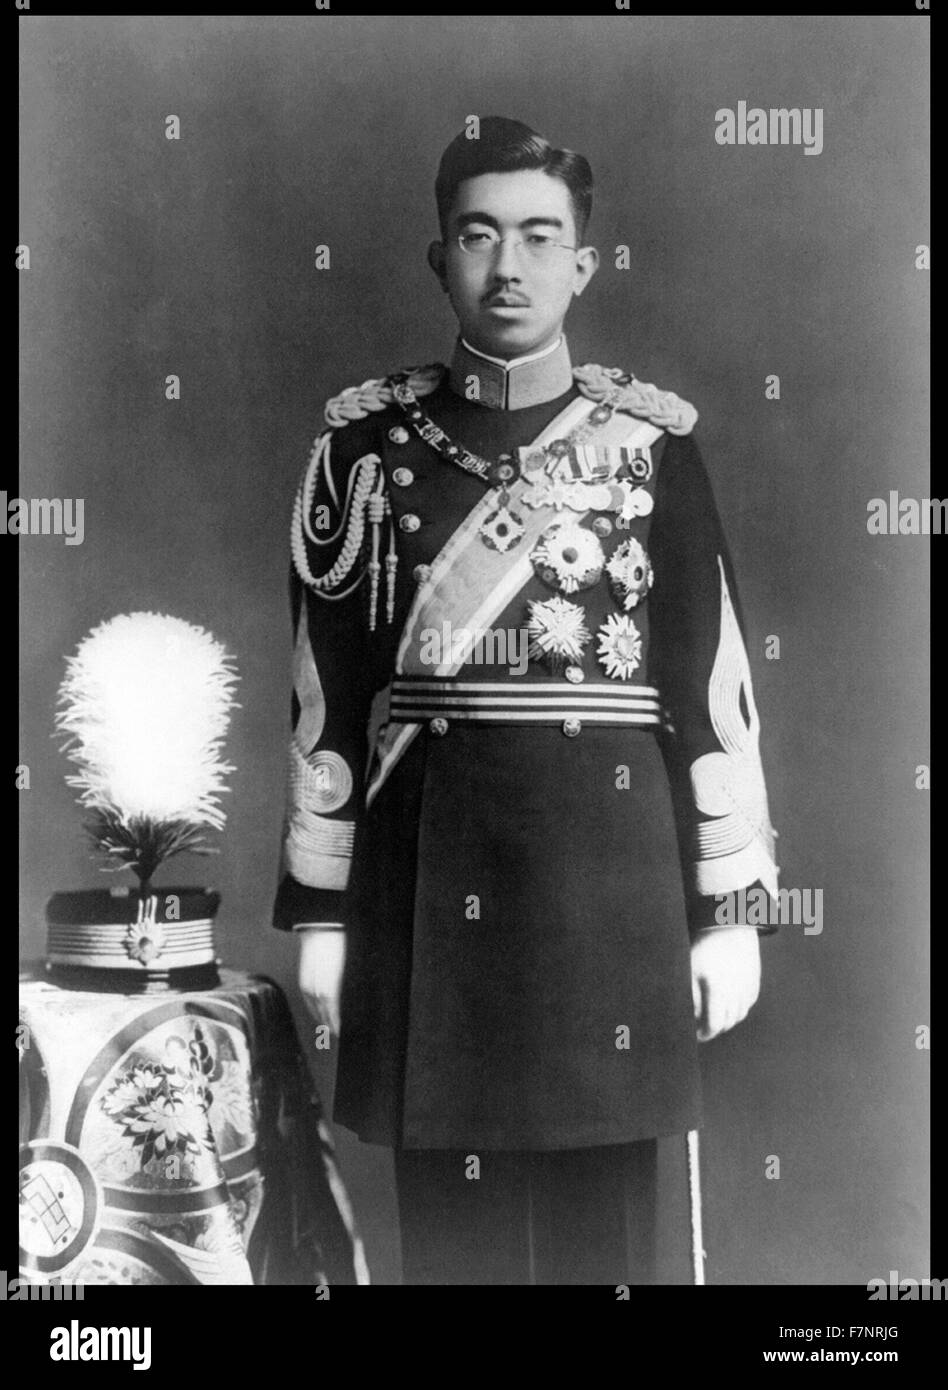 Photograph of Emperor Sh?wa (1901-1989) Emperor of Japan, also known as Hirohito, in Dress Uniform. Dated 1935 - Stock Image